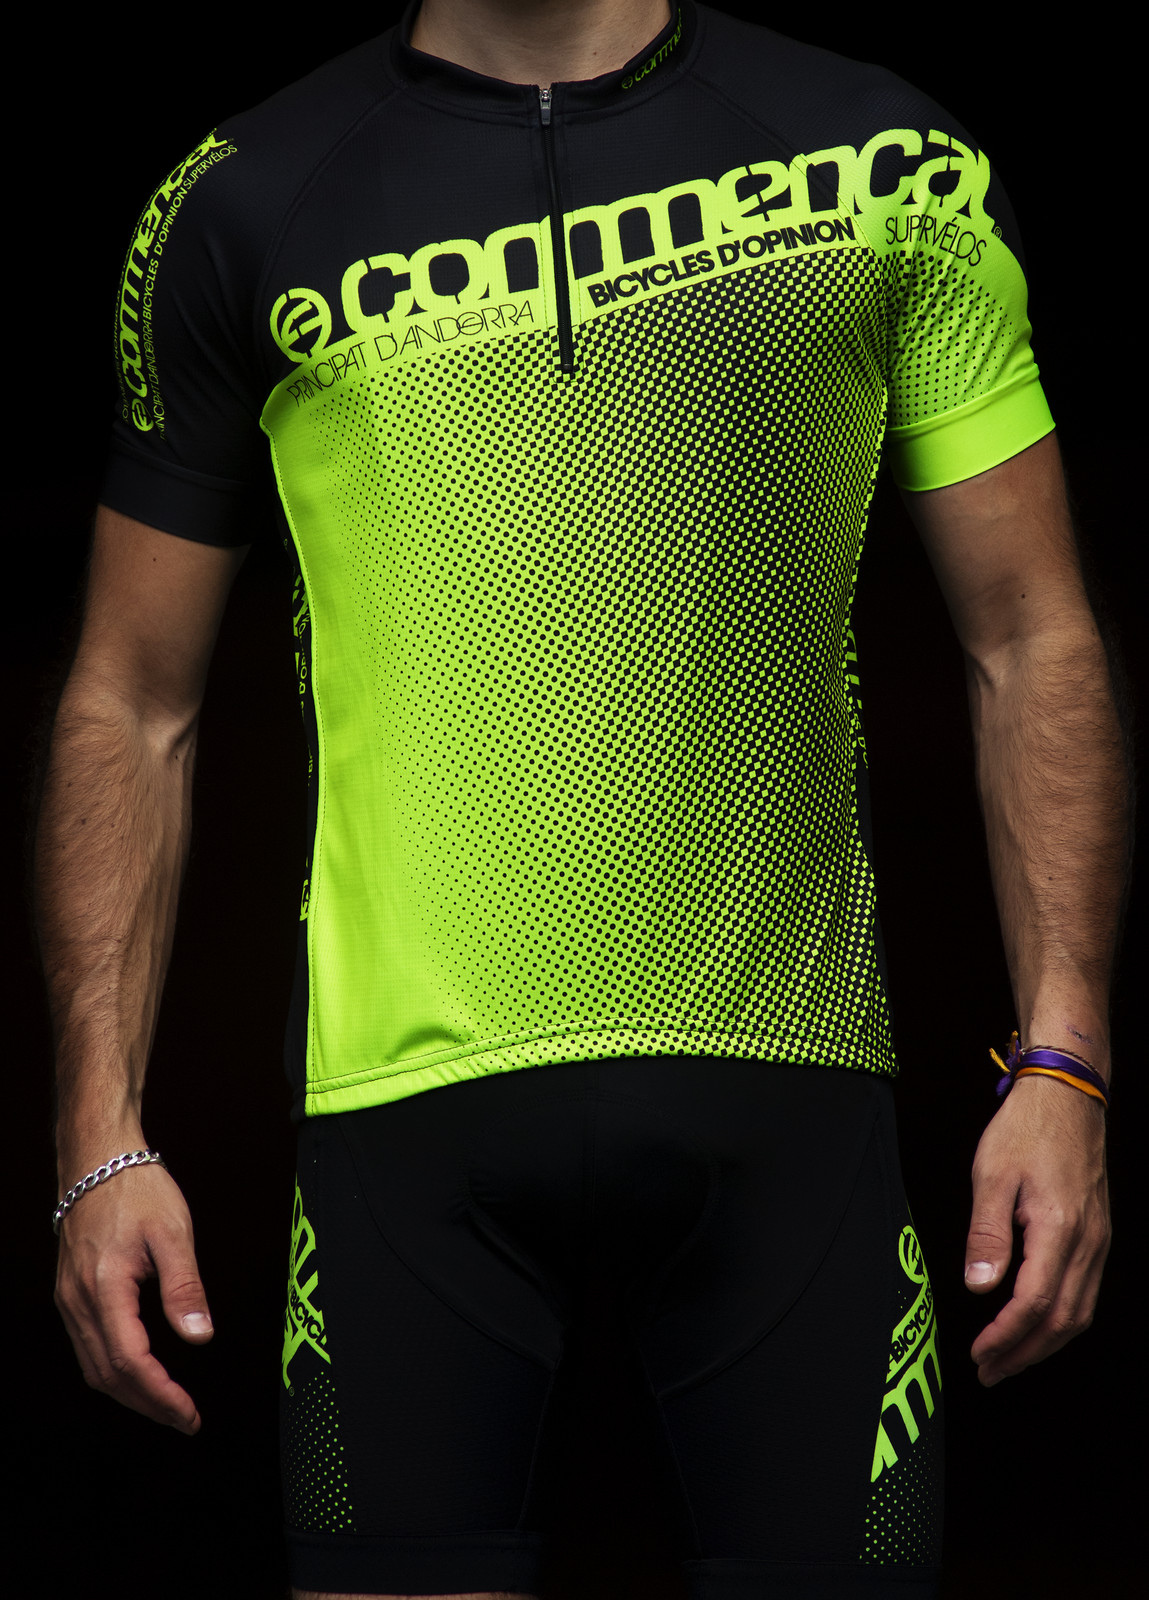 Commencal 2013 Jersey XC Short Sleeve  maillot_XC_green_1